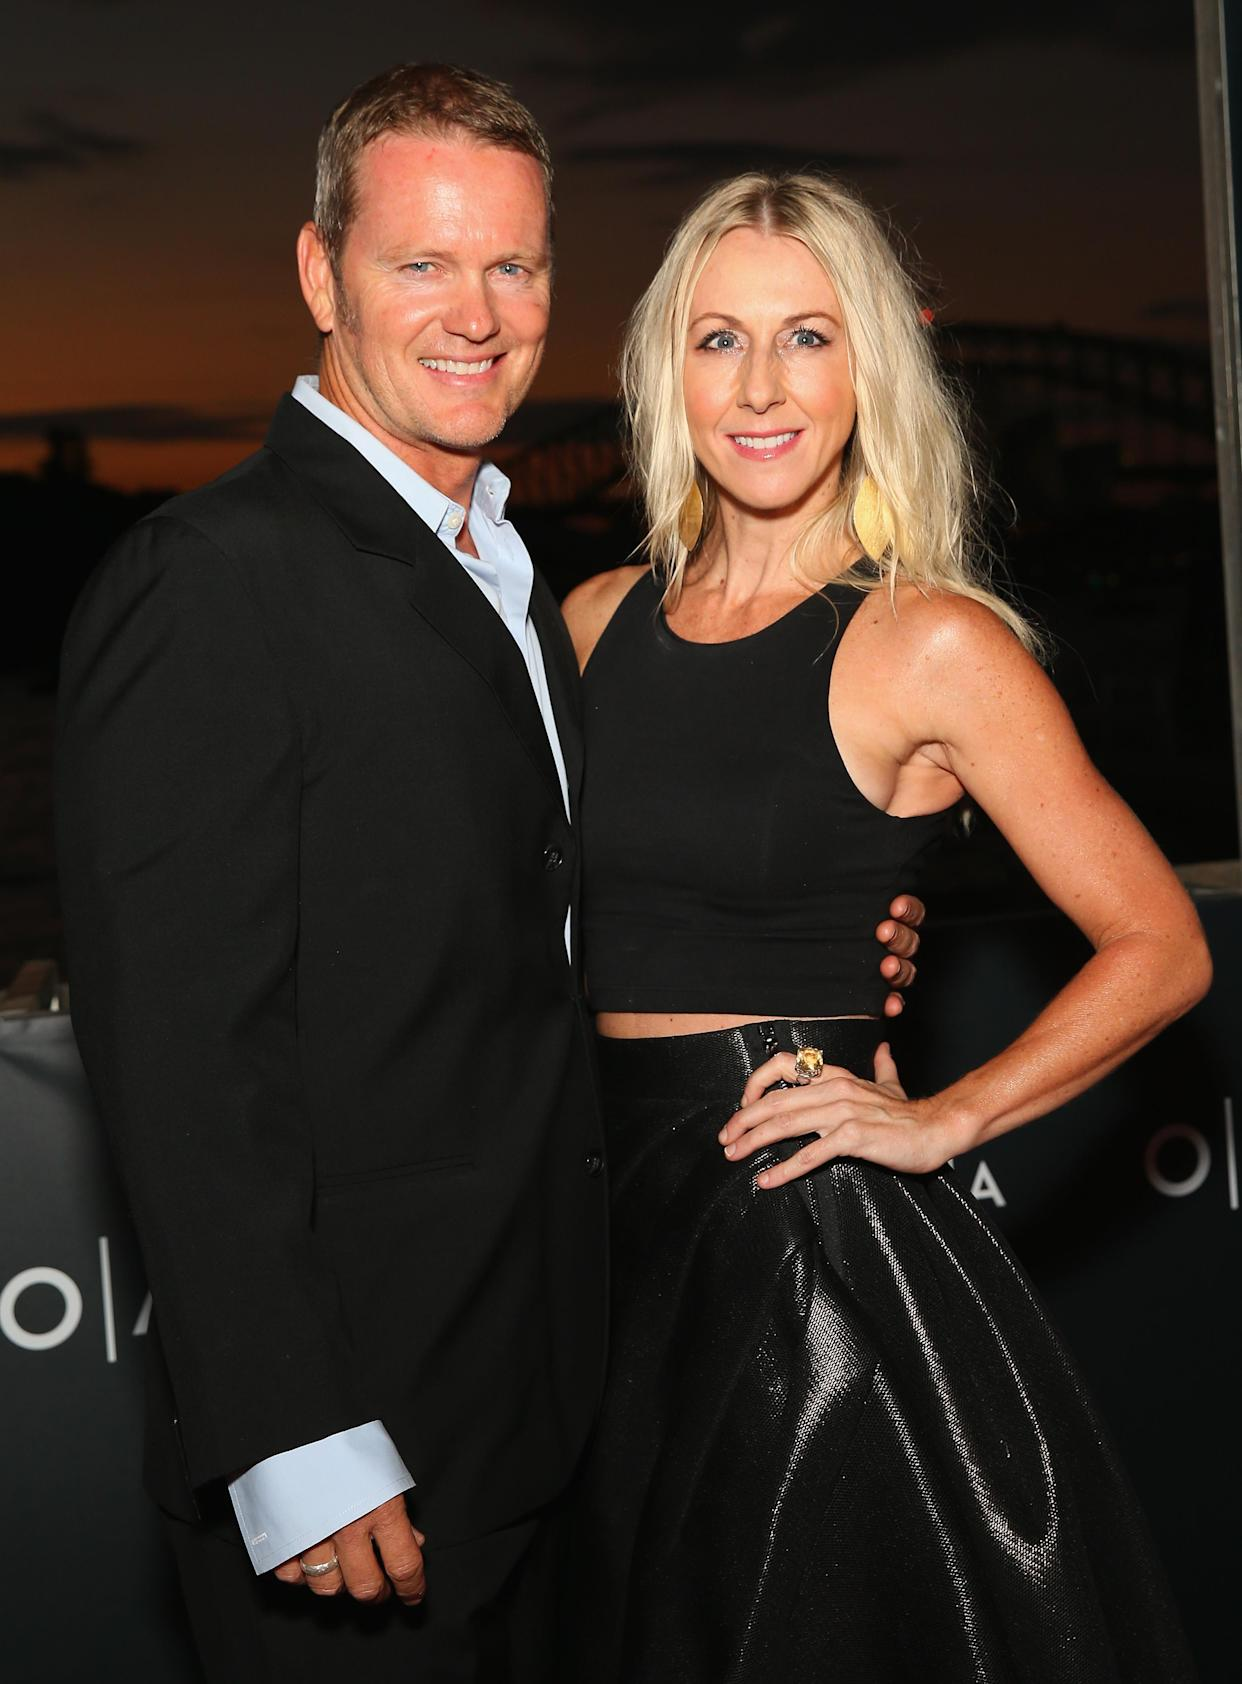 SYDNEY, AUSTRALIA - MARCH 24:  Craig McLachlan and Vanessa Scammell arrive ahead of opening night of Handa Opera's Turandot on March 24, 2016 in Sydney, Australia.  (Photo by Don Arnold/WireImage)